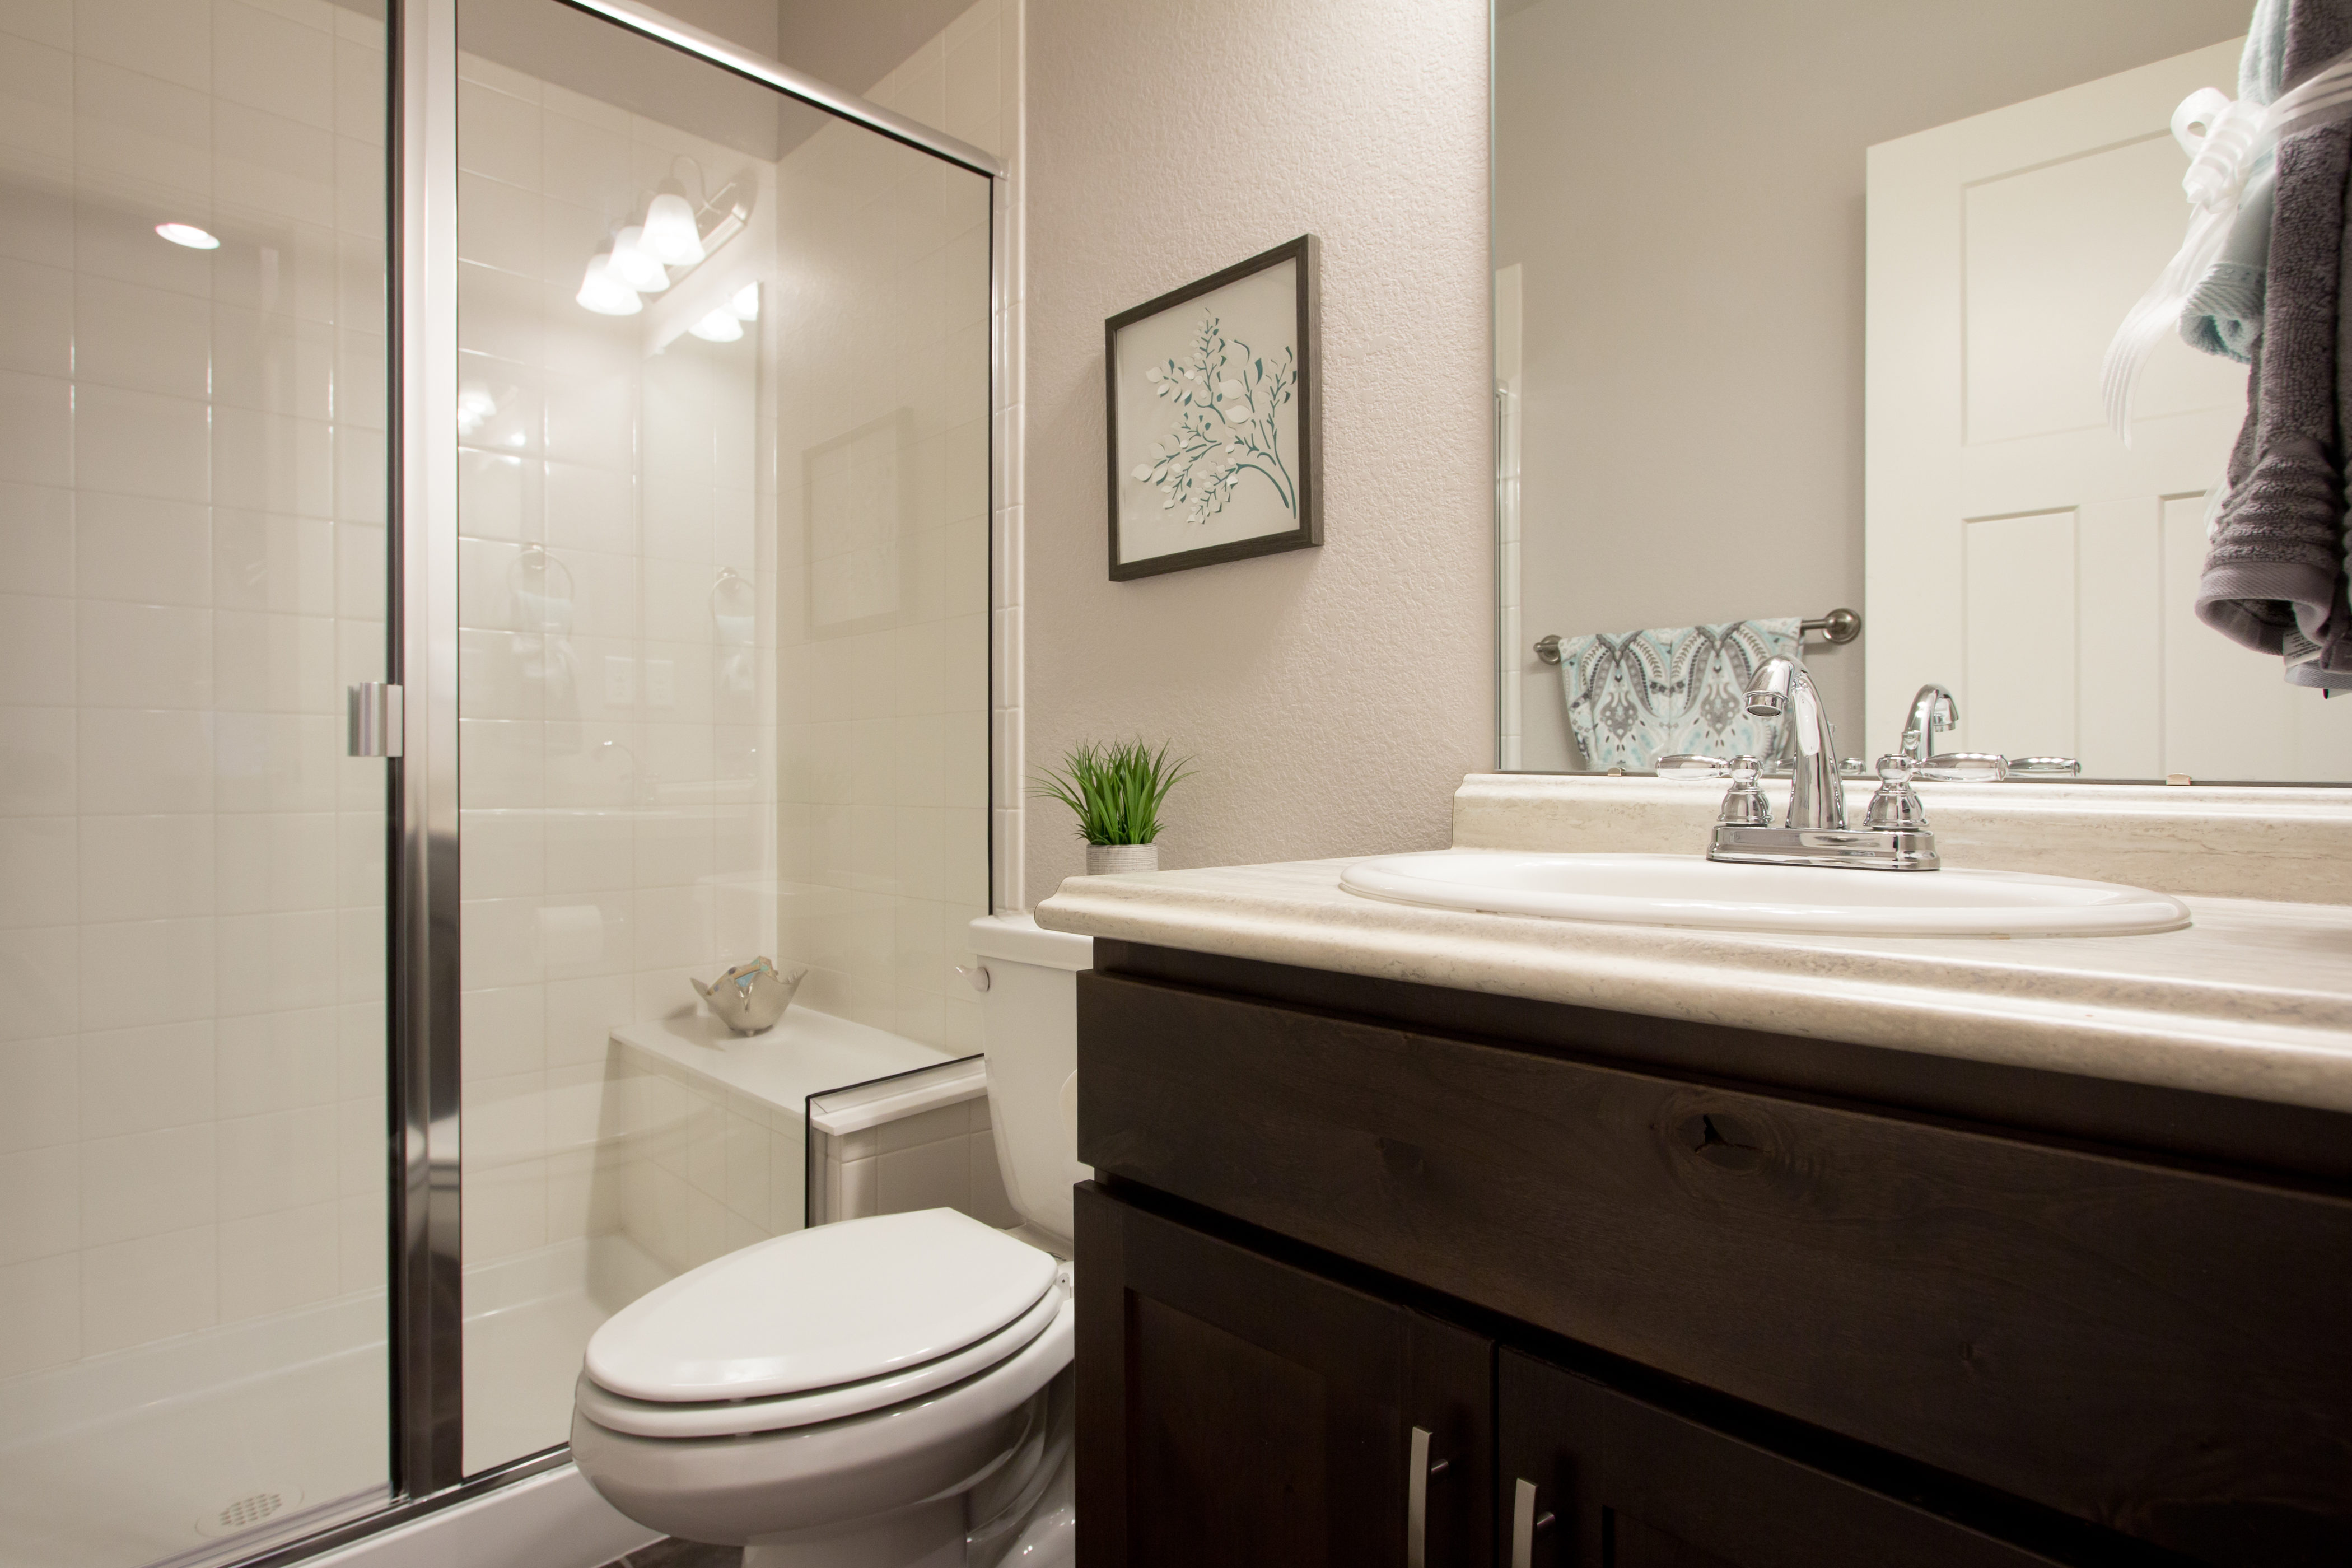 24-montrose-fort_collins-main_floor_bath-new_home